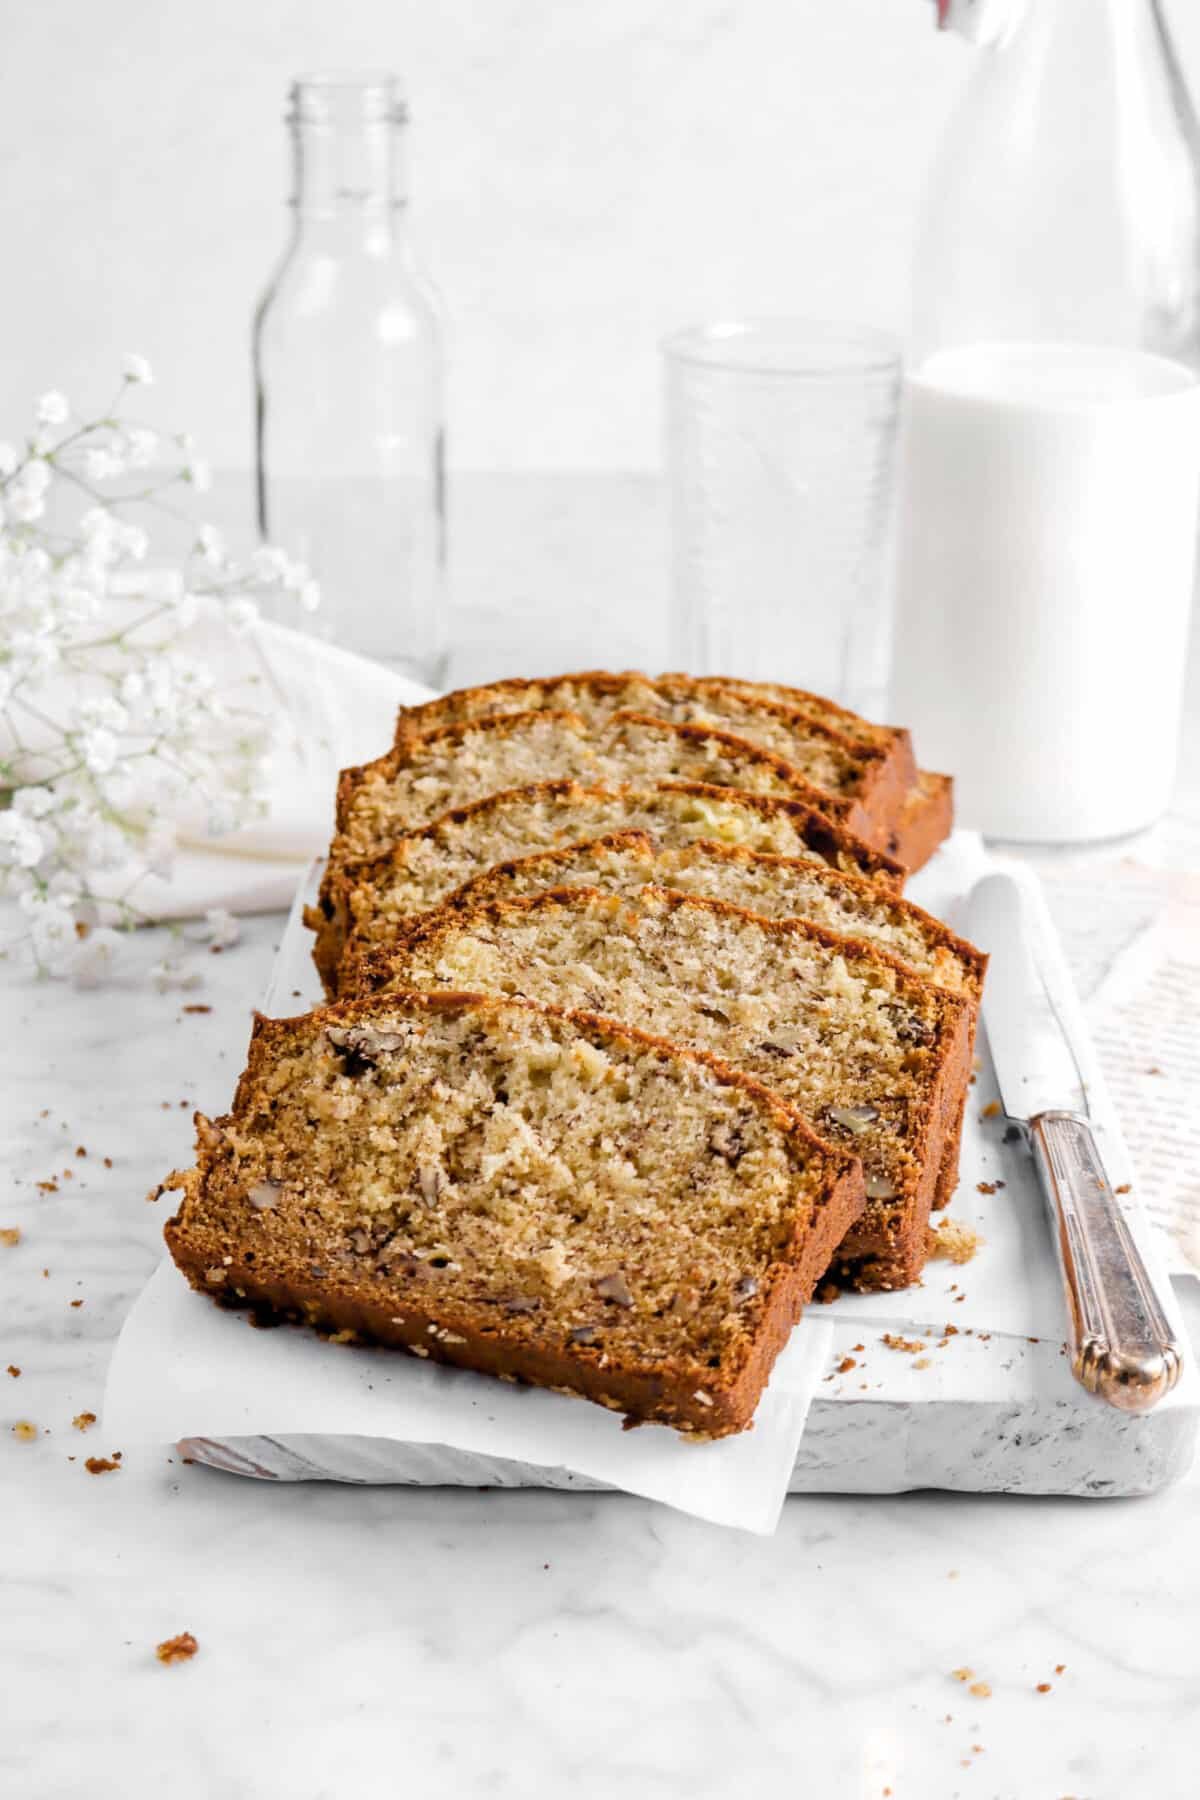 banana bread on white board with knife, milk, two glasses, napkin, and flowers behind